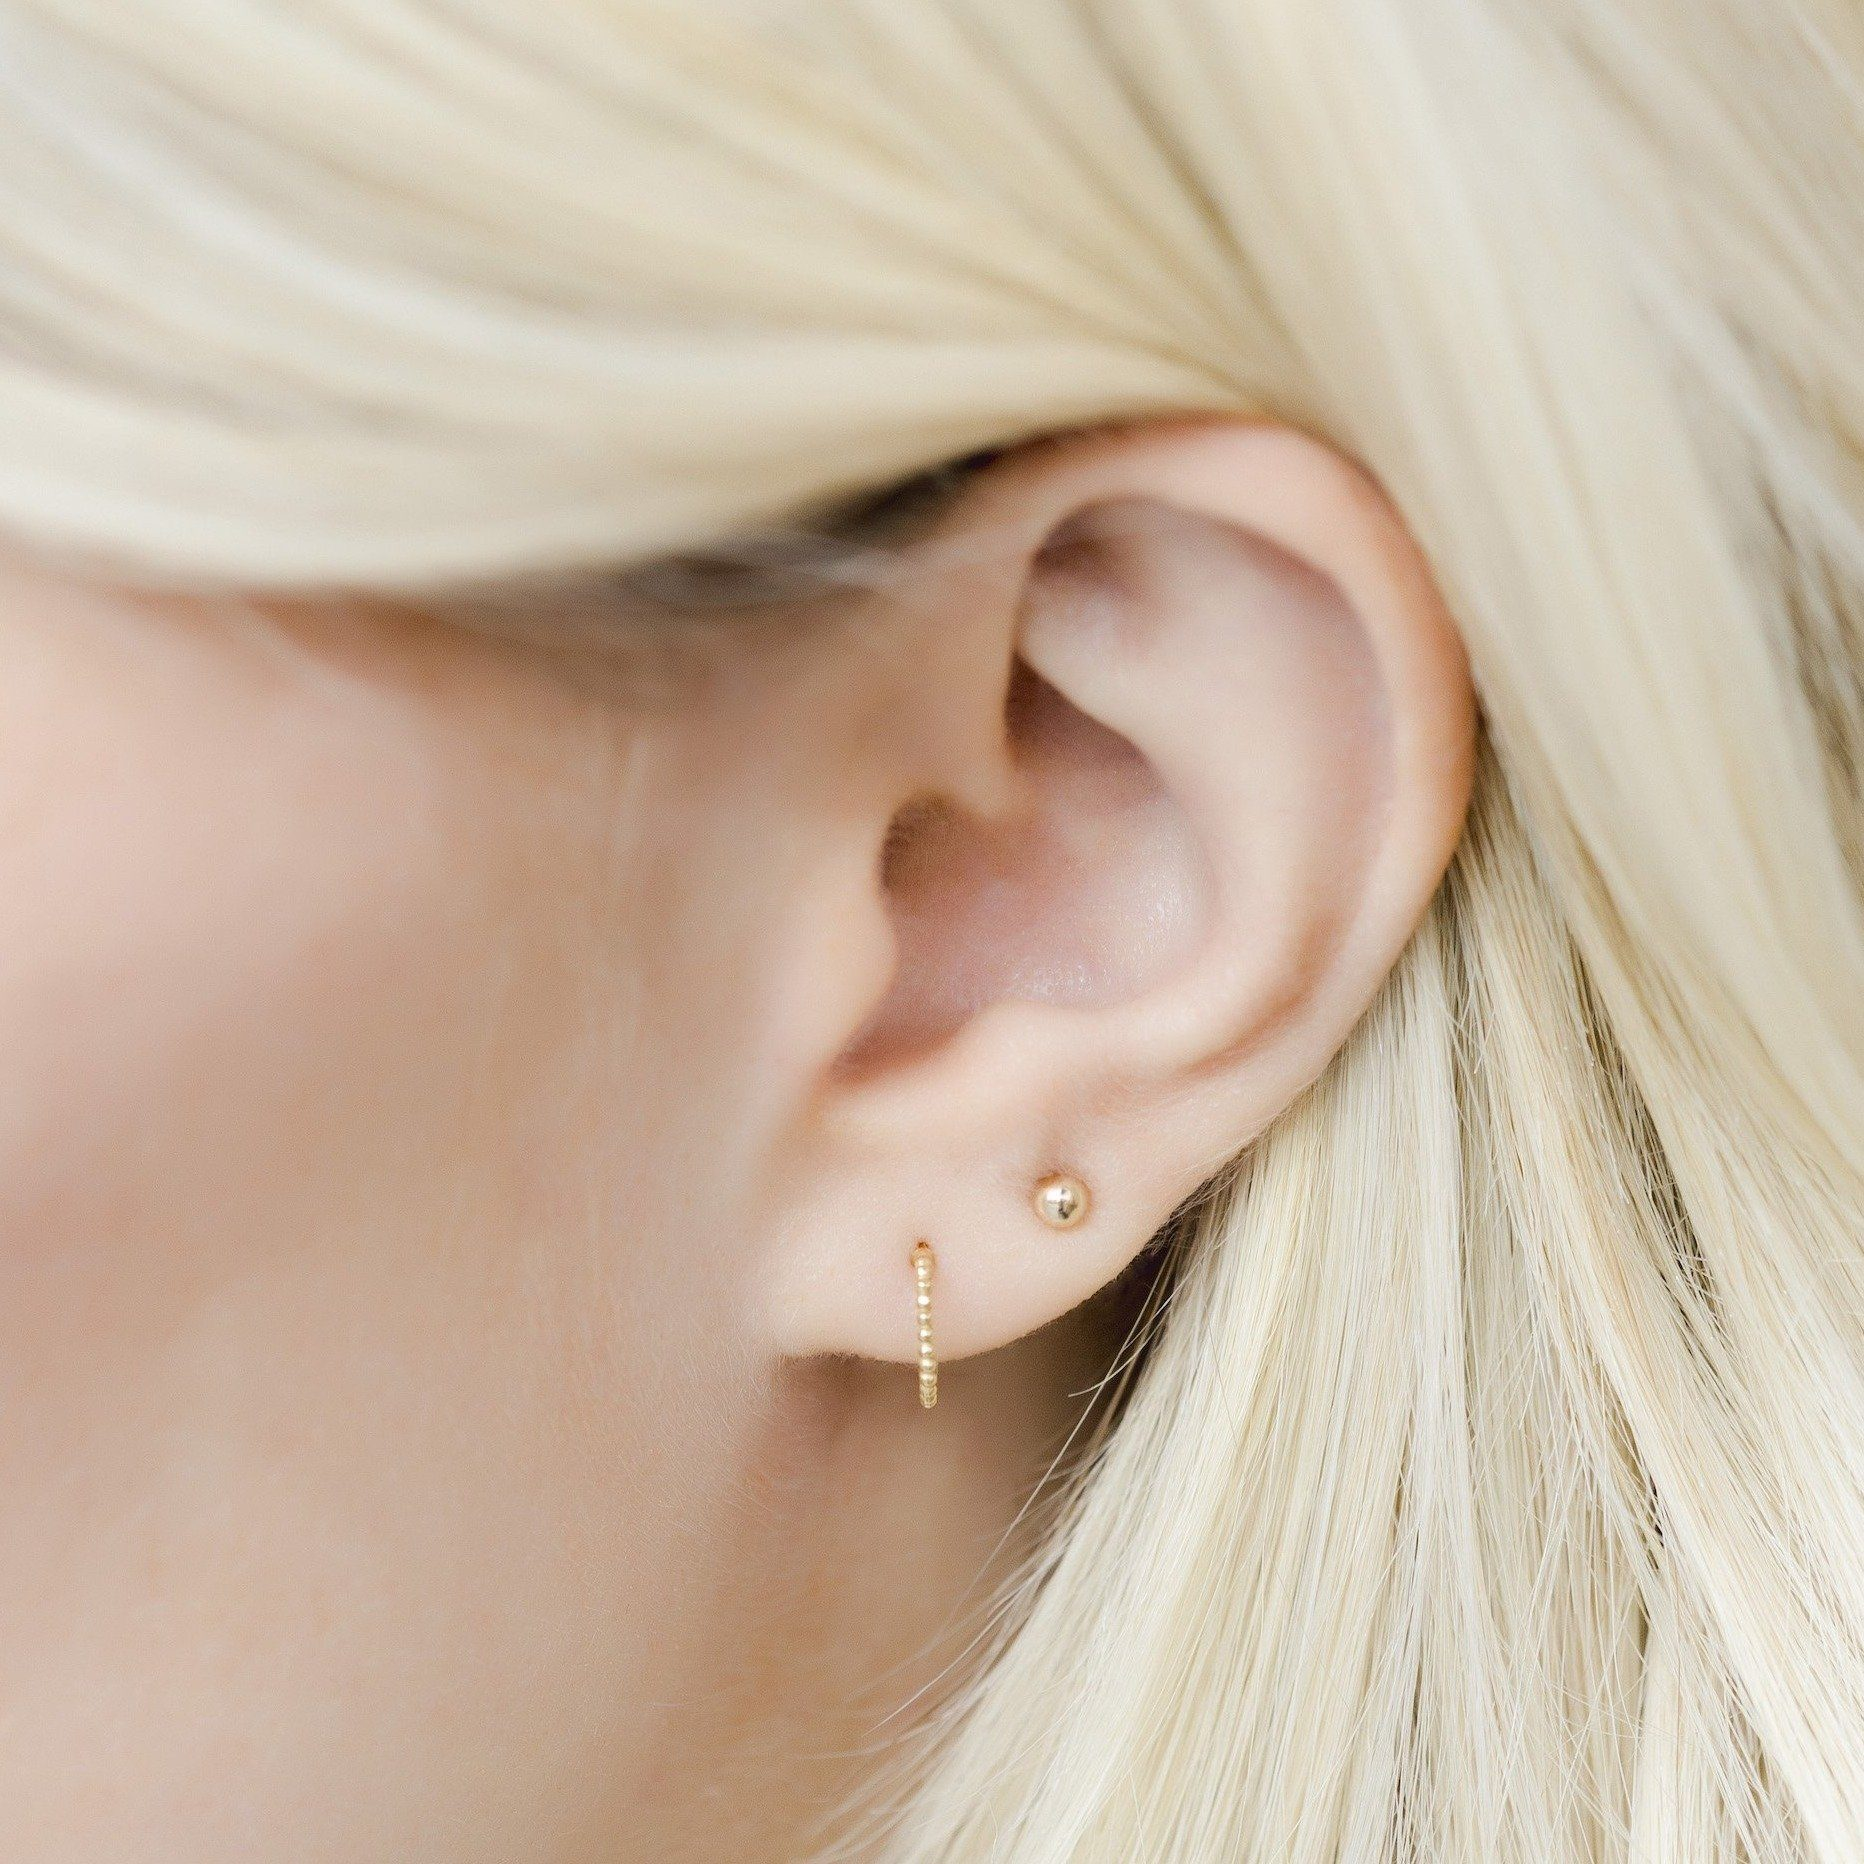 The Beaded Hoop Studs and Beaded Studs are a beautiful, classic set of earrings that you'll never want to take off. Handmade in California by Katie Dean Jewelry. Nickel free and hypoallergenic.